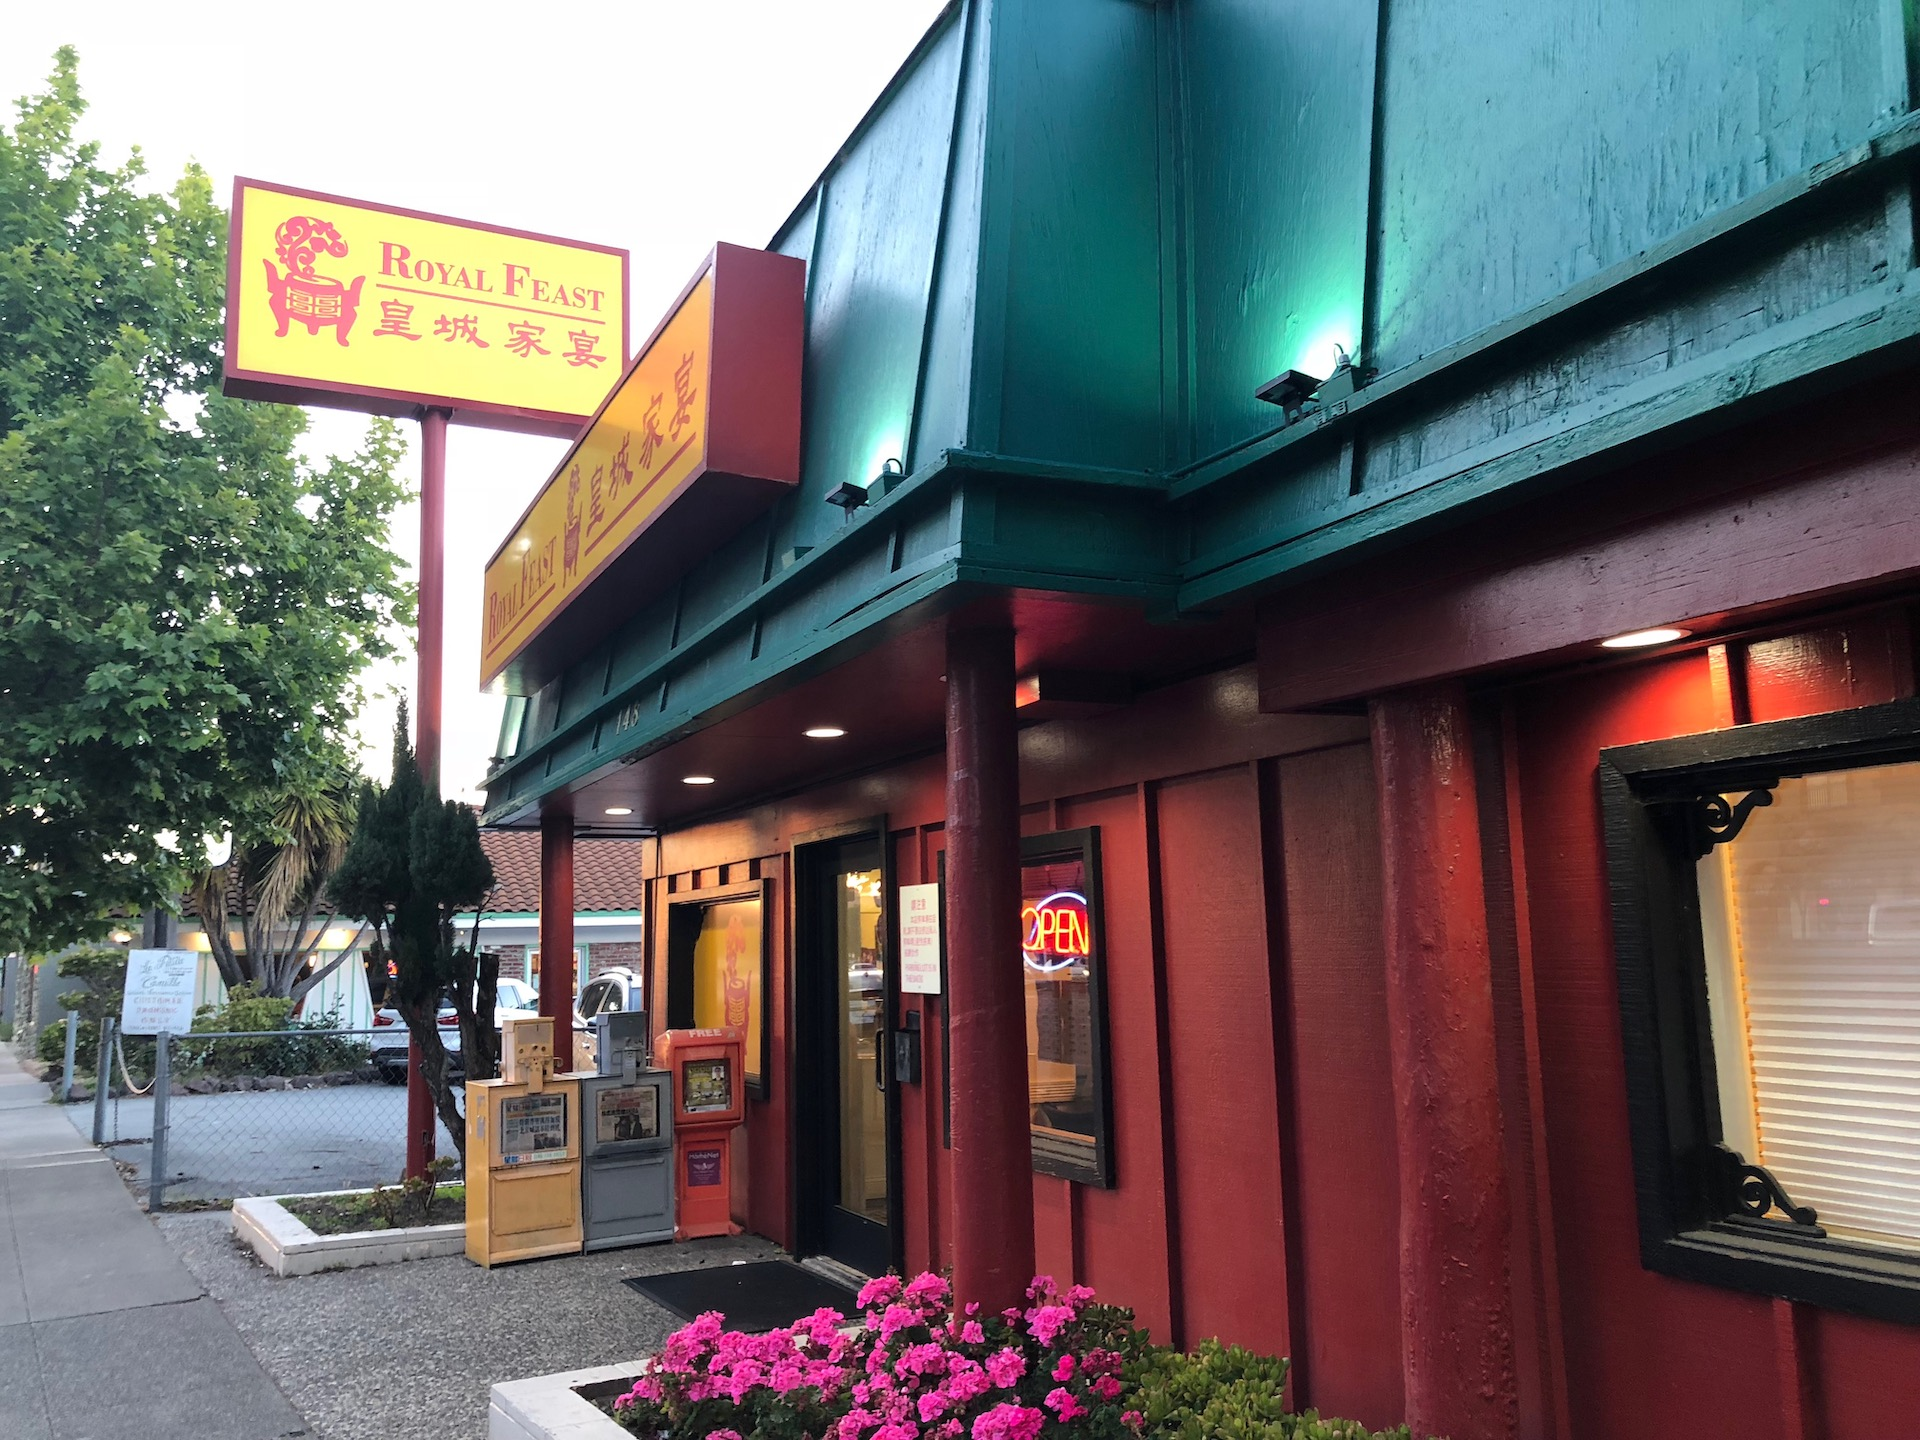 Celebrity Dining: Royal Feast in Millbrae is a favorite destination for locals and for travelers with its location by SFO and Millbrae BART.